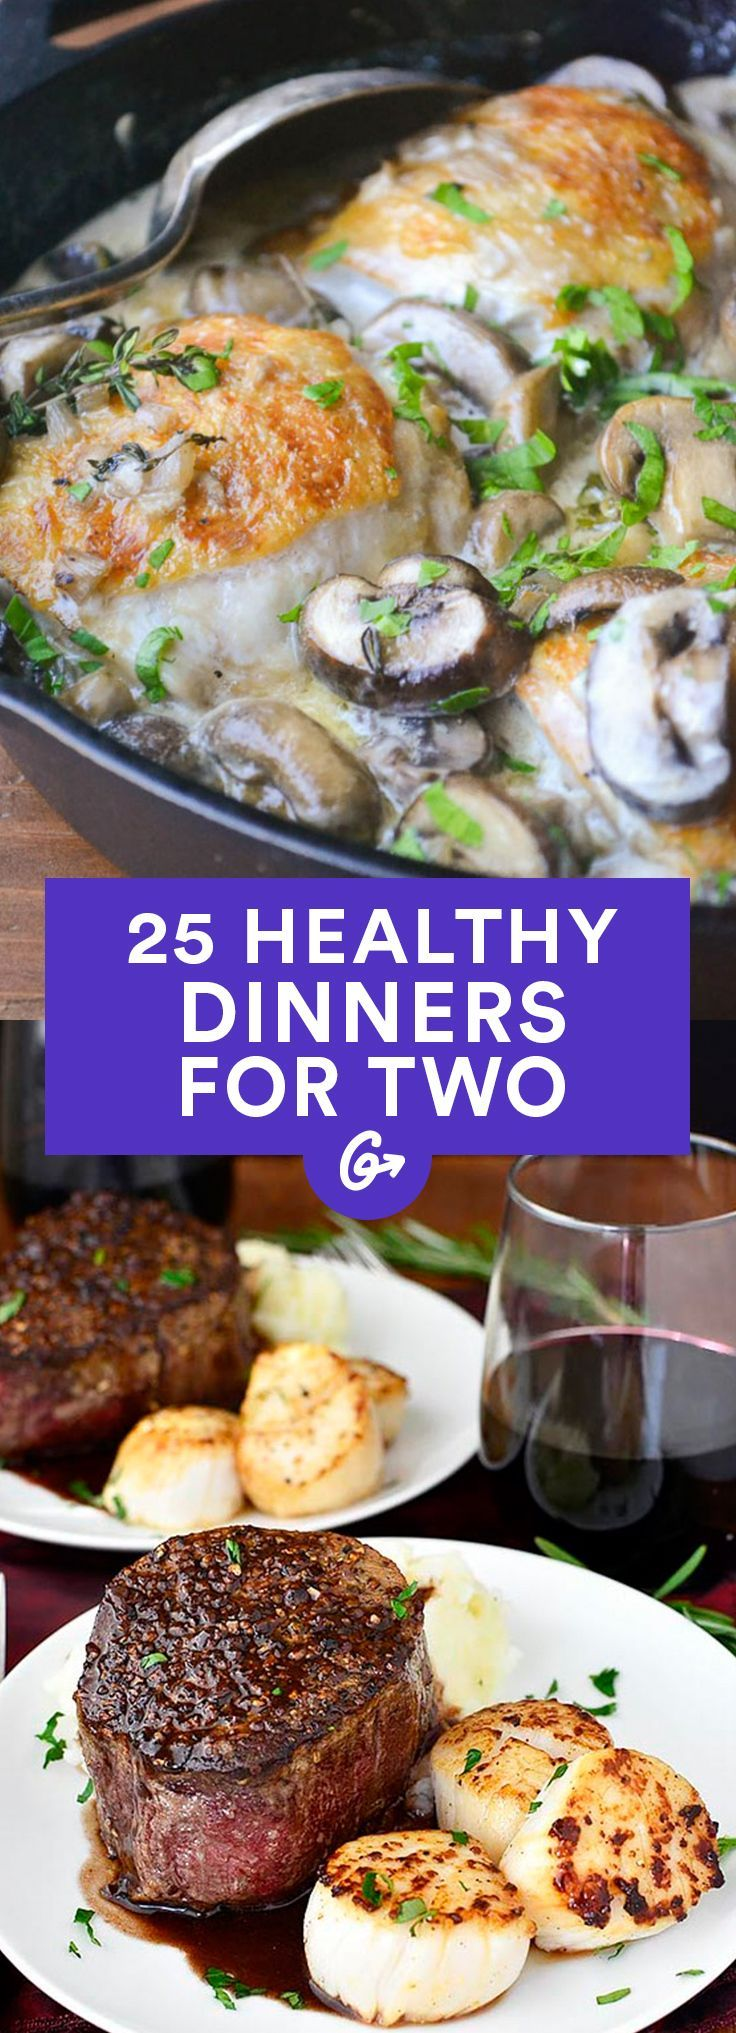 25 Healthy Dinner Recipes for Two | Healthy dinner recipes and Dinners